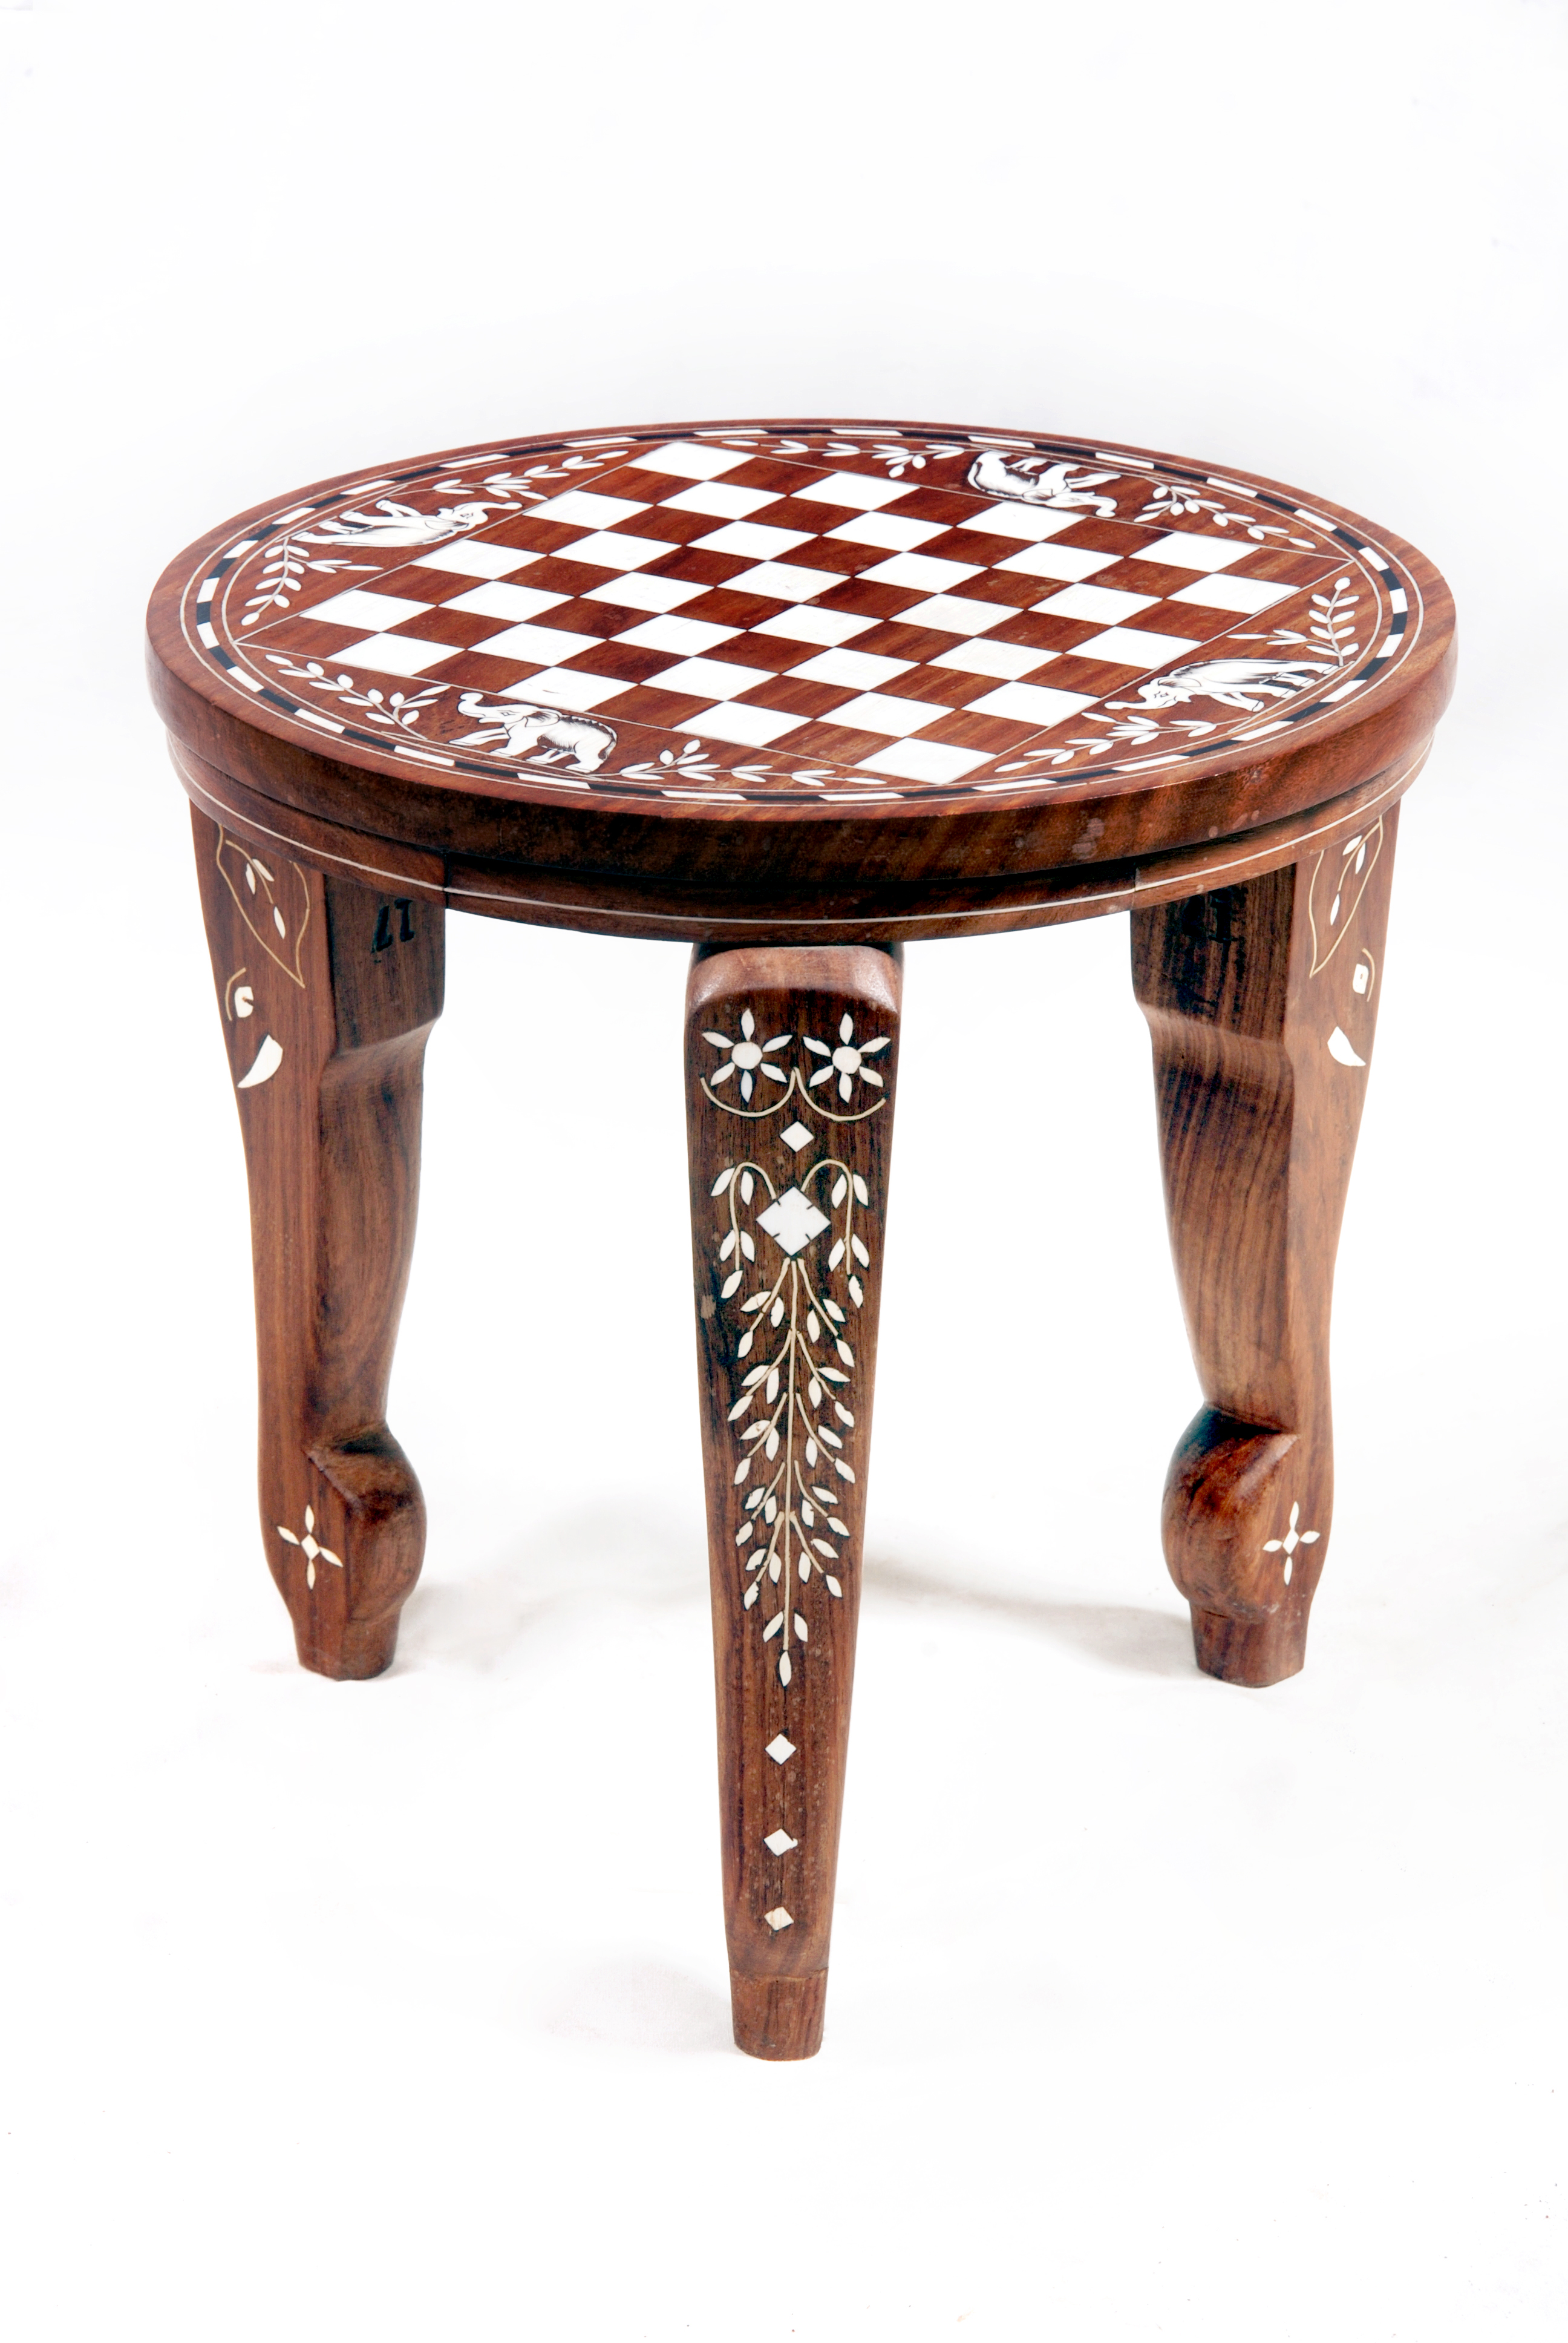 wooden round chess table with fine inlay natural